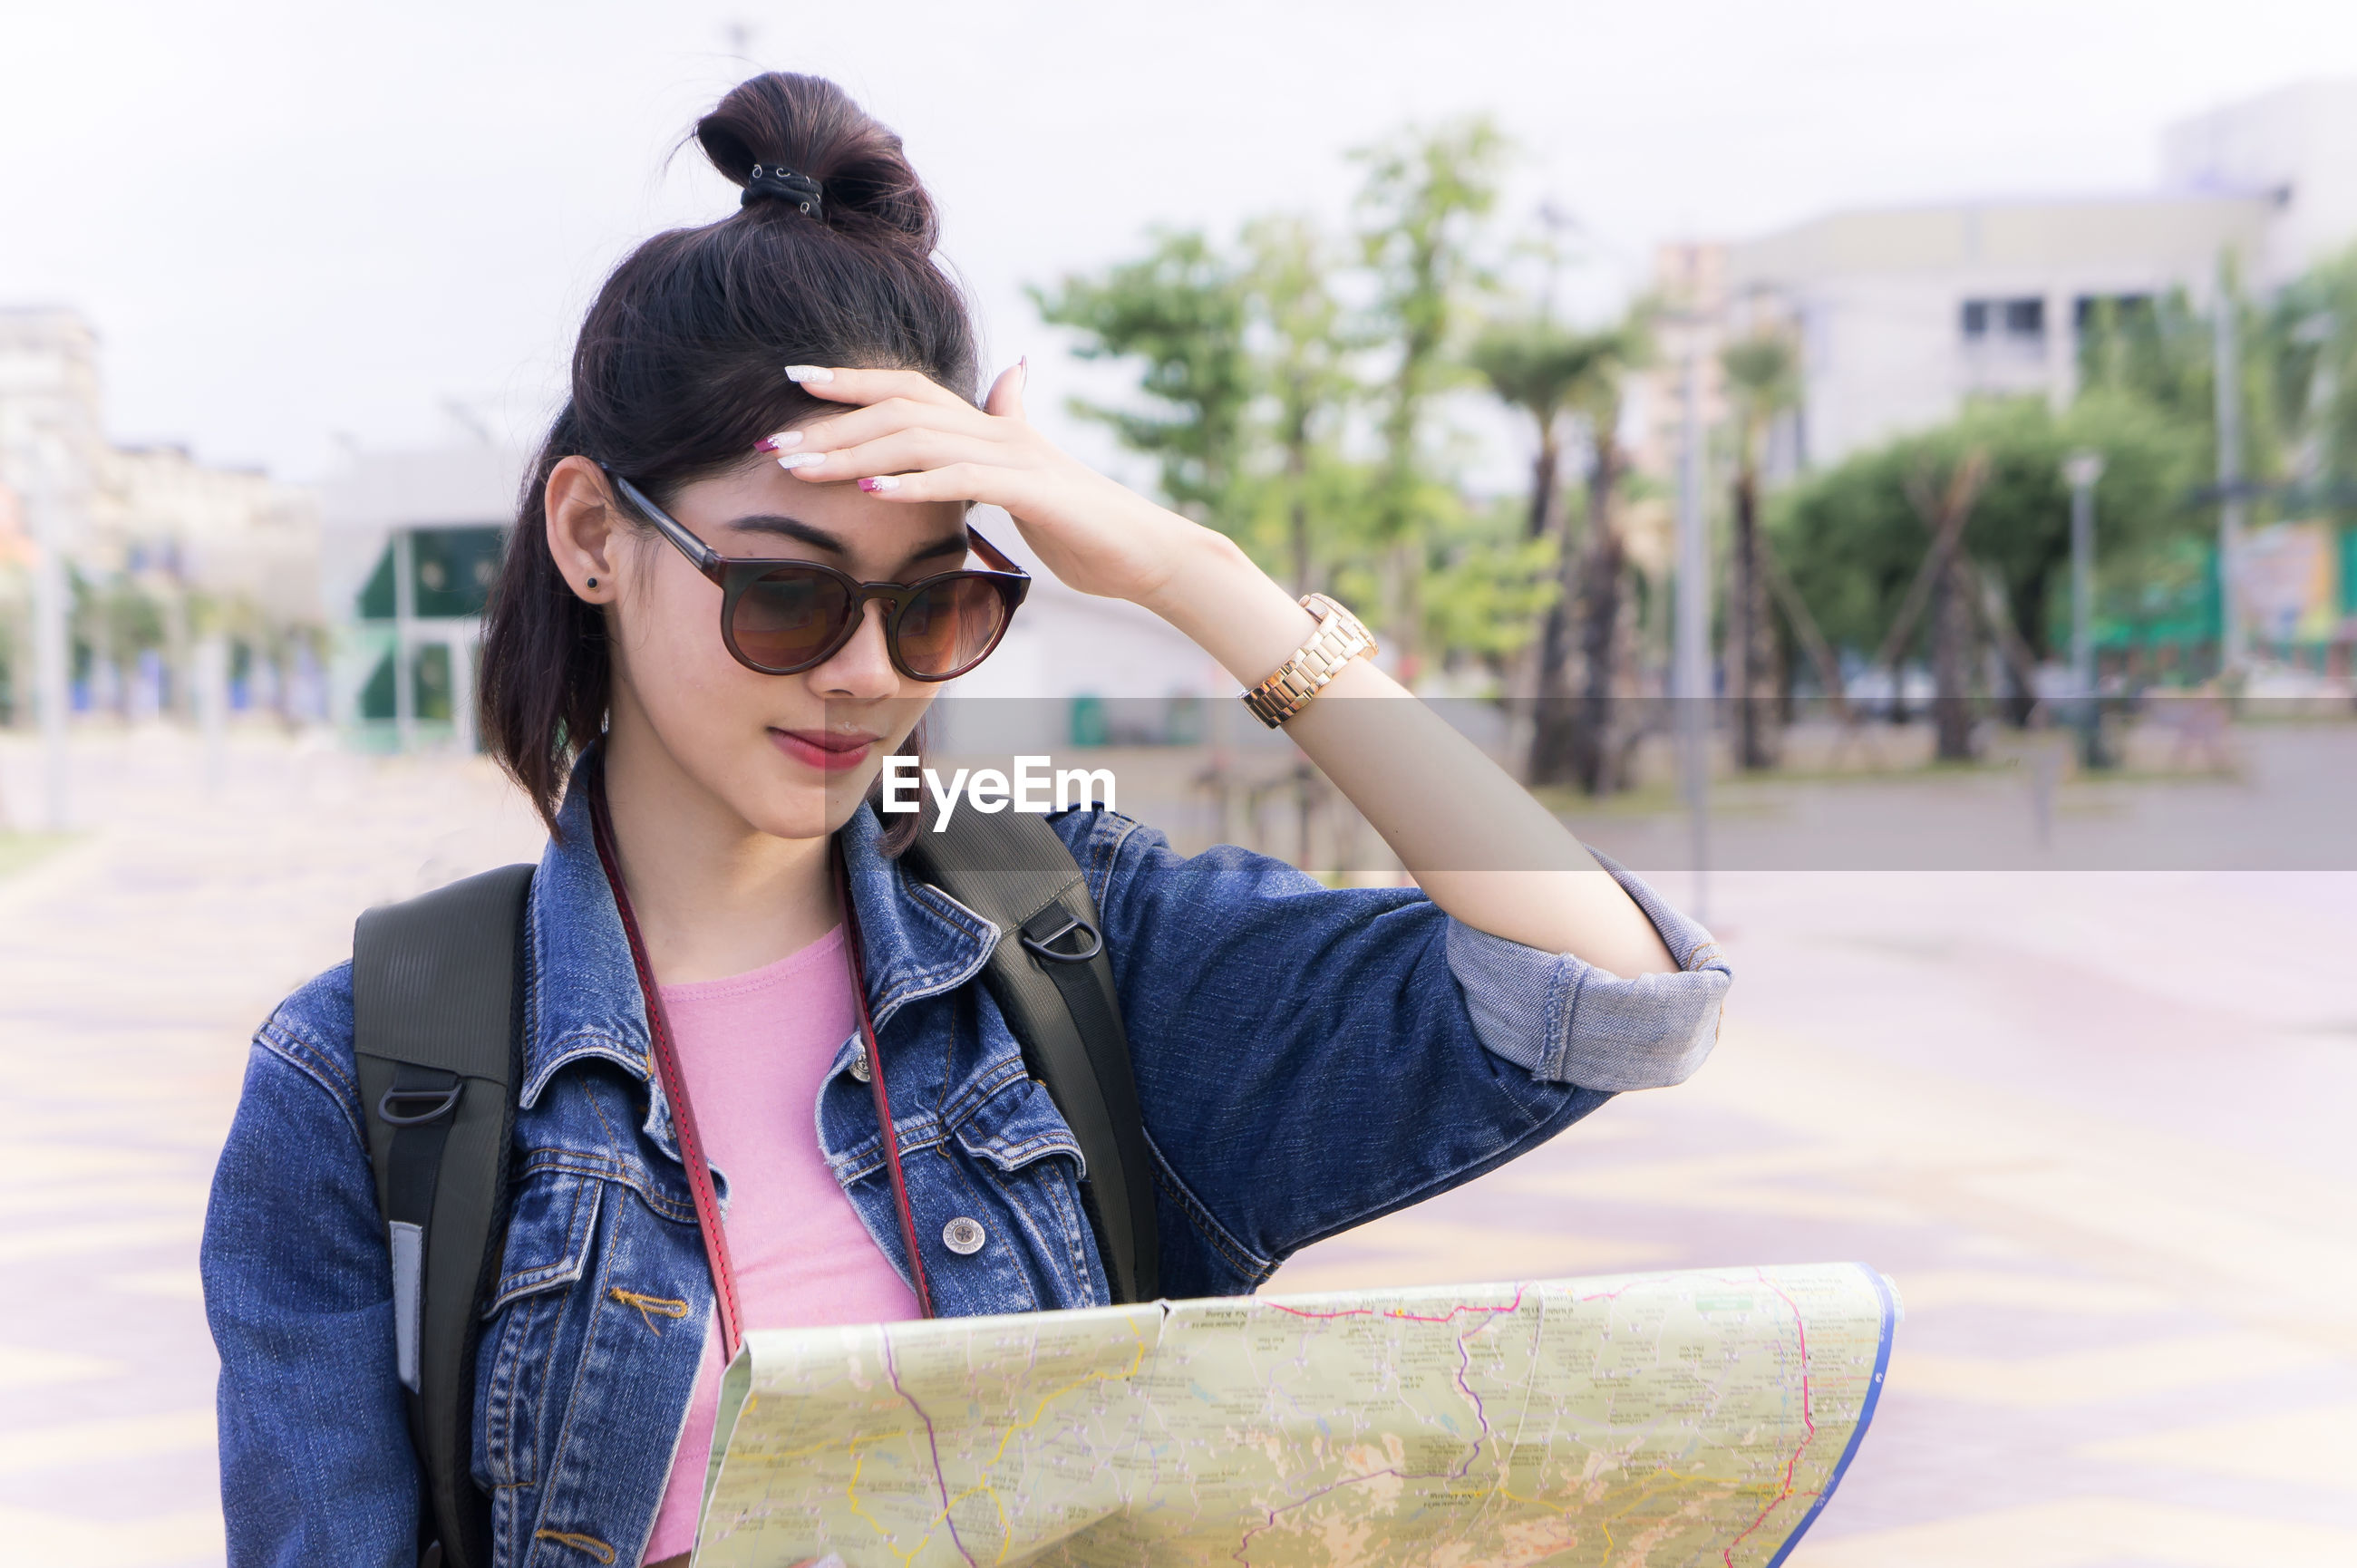 Young woman wearing sunglasses reading map while standing in city